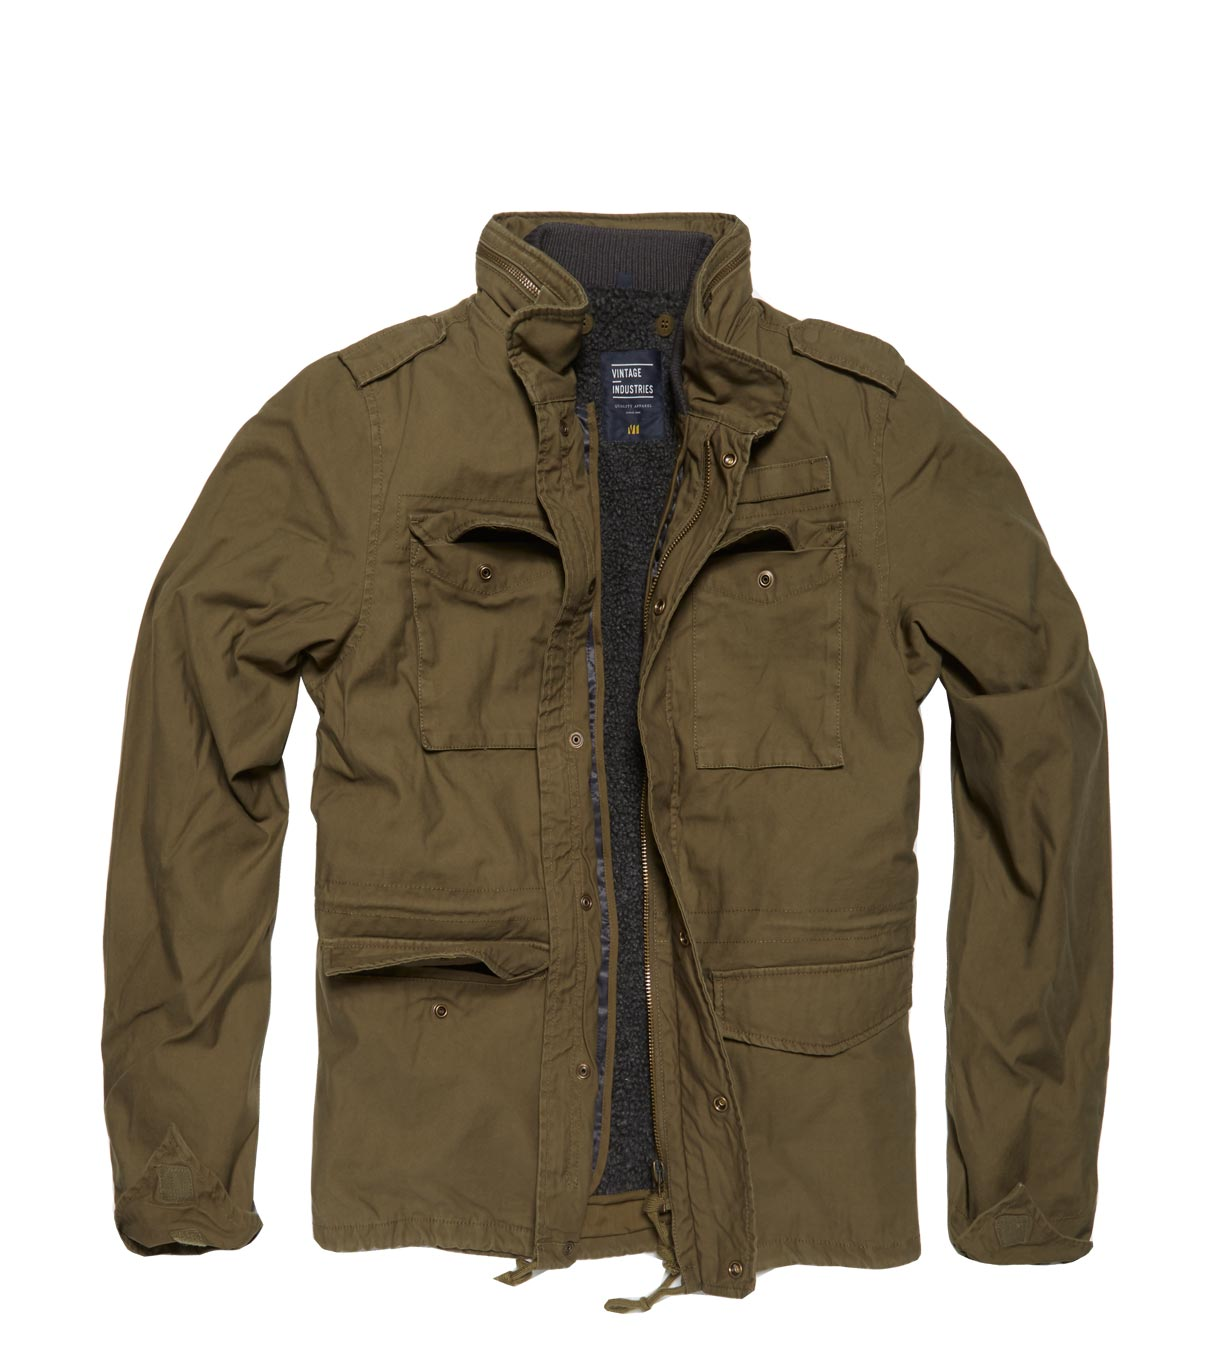 2203Bg - Ground parka (big sizes)